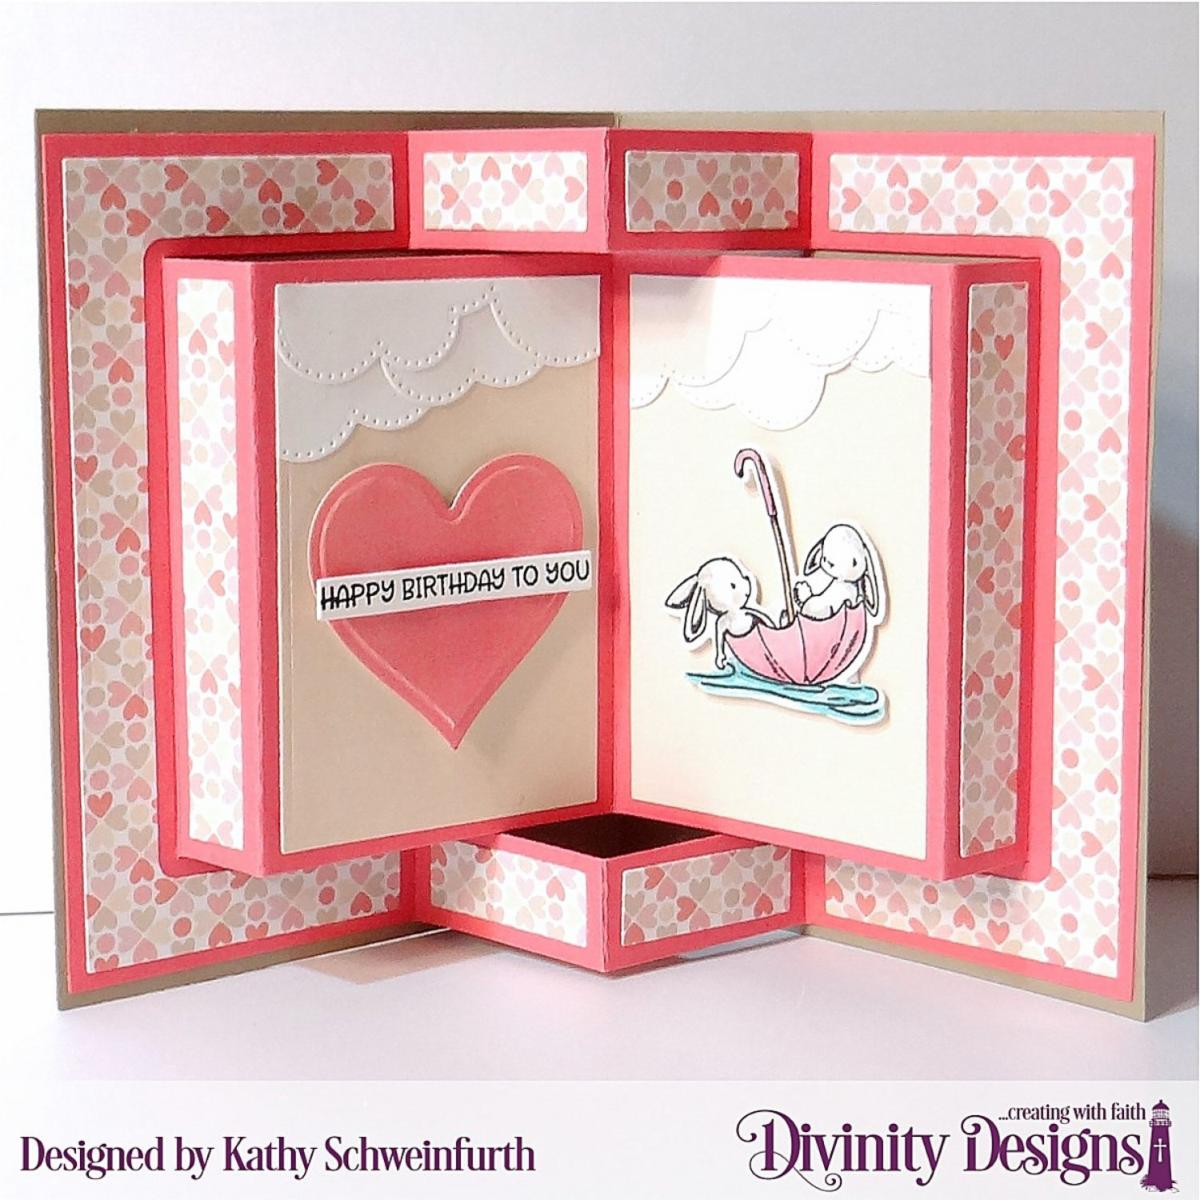 Stamp/Die Duos: Somebunny Custom Dies: Book Fold Card with Layers, Layering Hearts, Sentiment Strips, Scalloped Circles, Circles, Cloud Border Paper Collection: Baby Girl